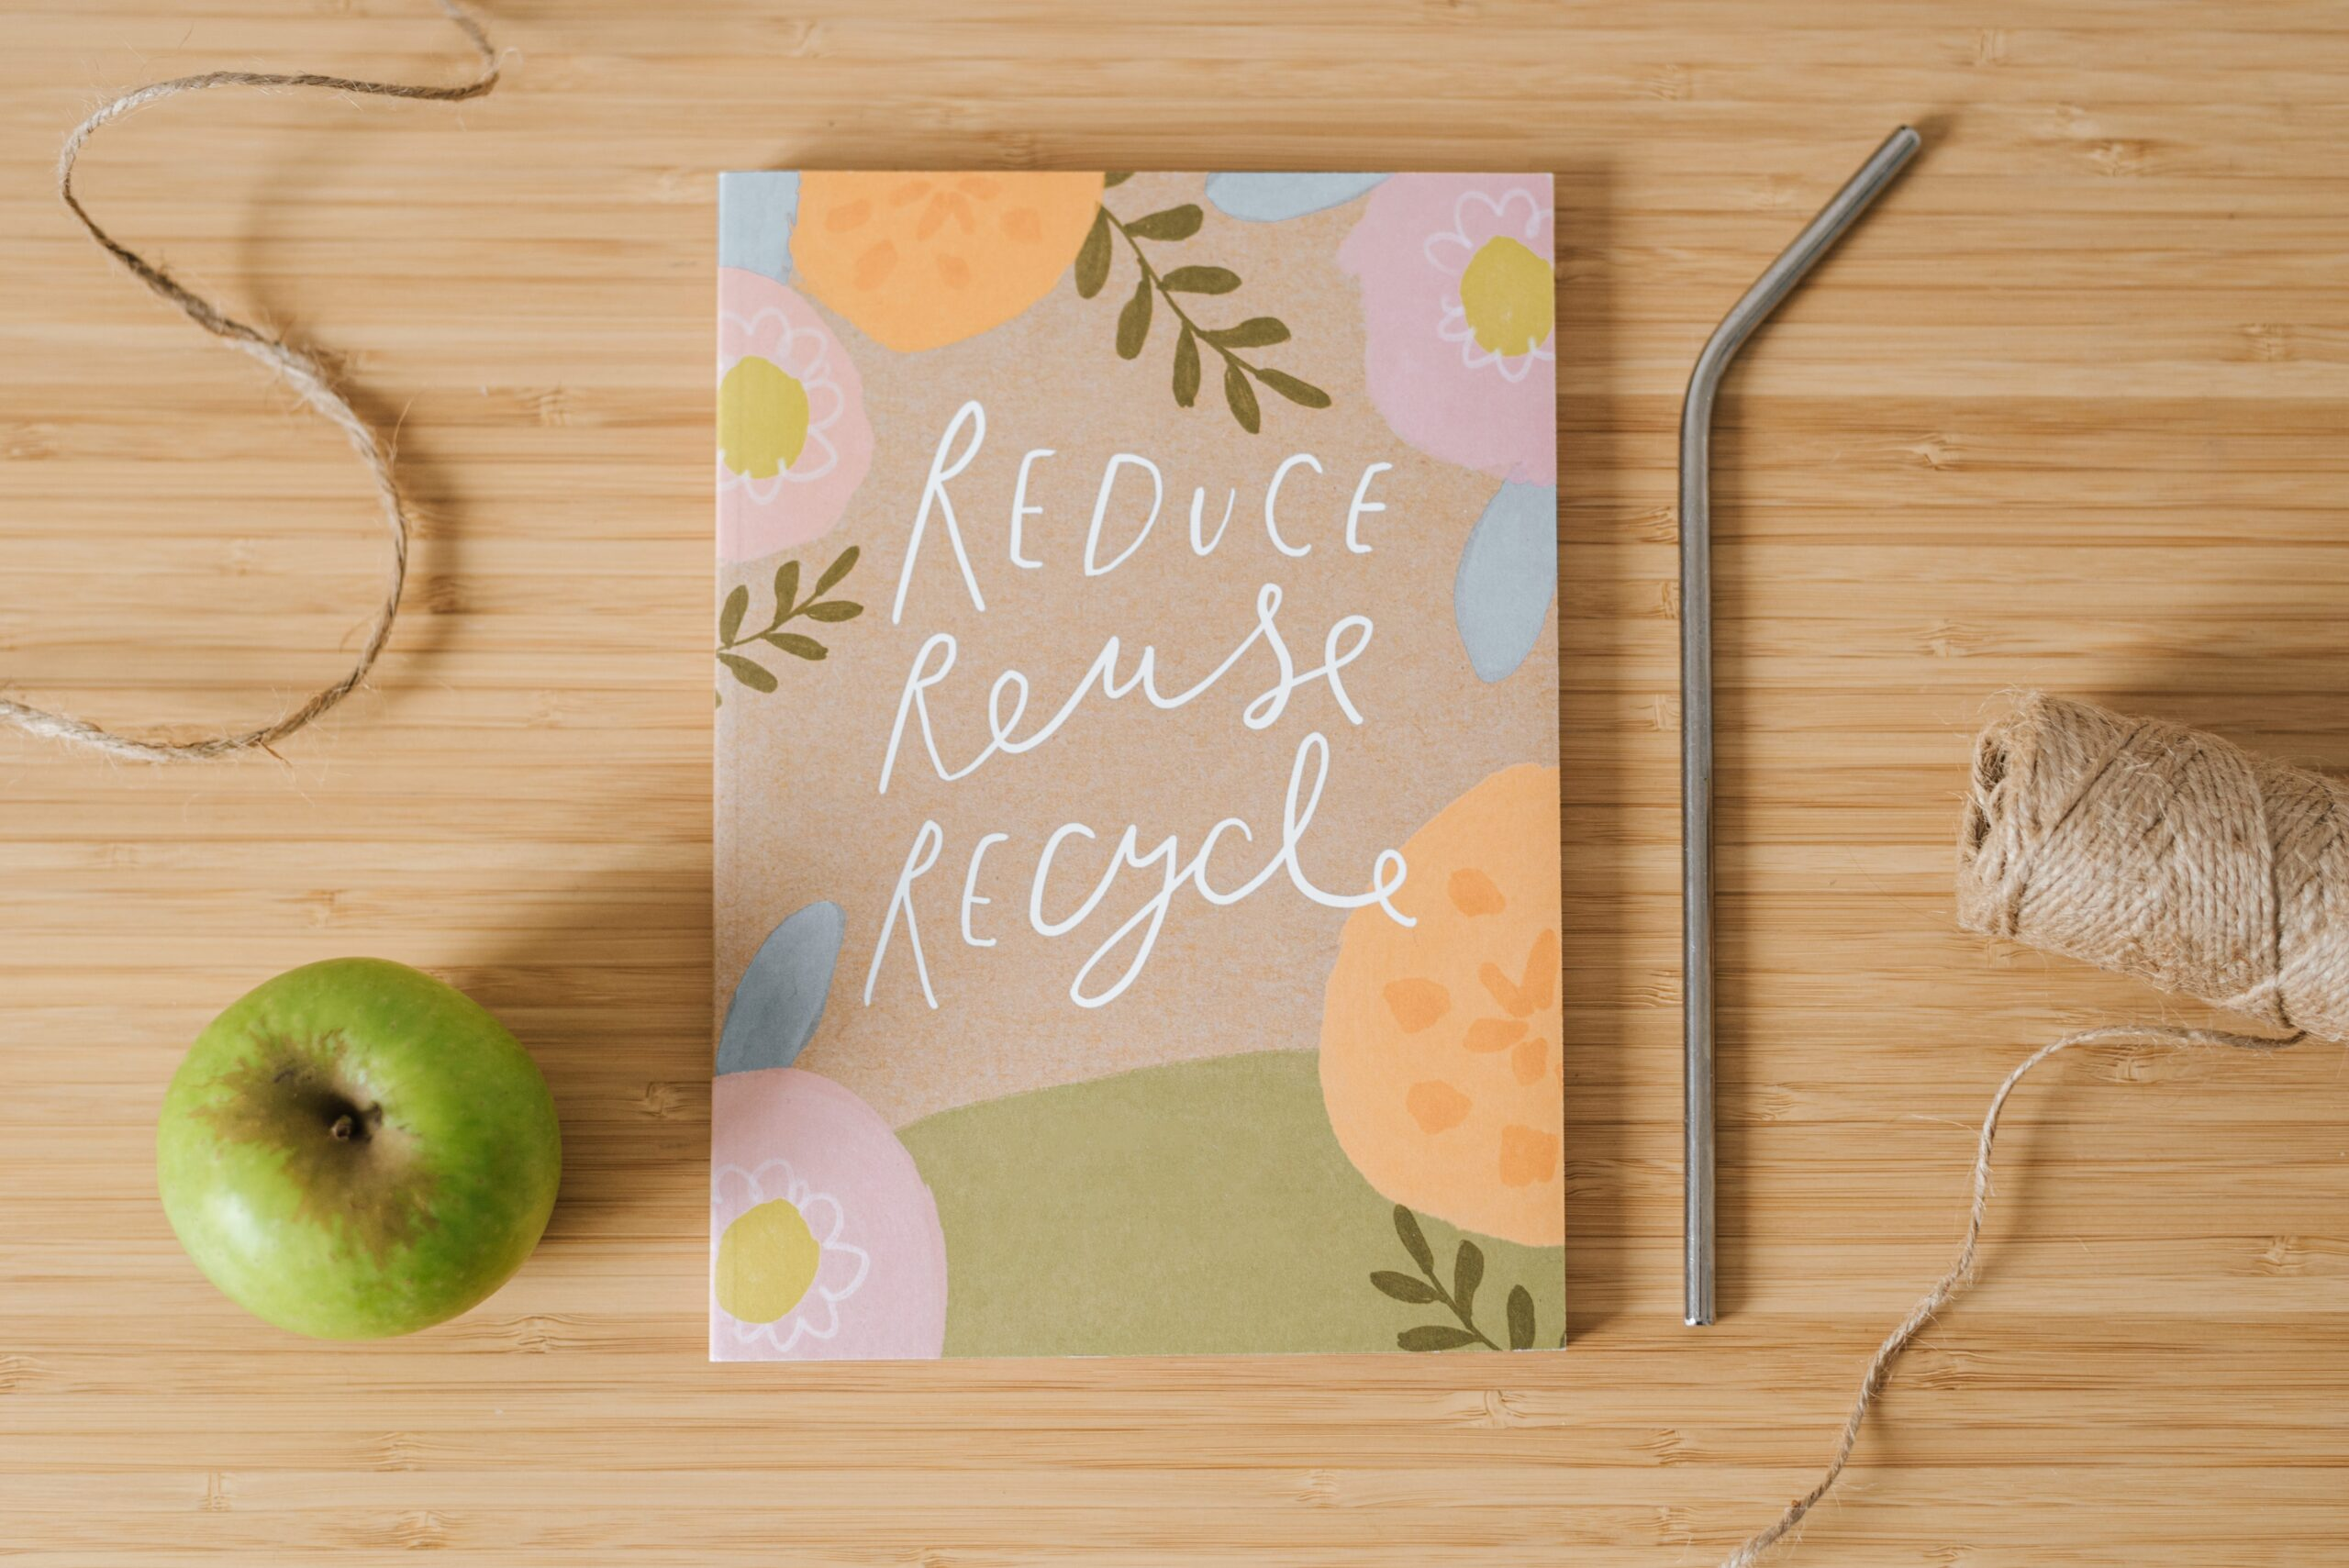 """Notebook that has, """"Reduce, Reuse, Recycle"""" written on the cover is placed on a desk and has an apple, a metal straw, and string next to it."""